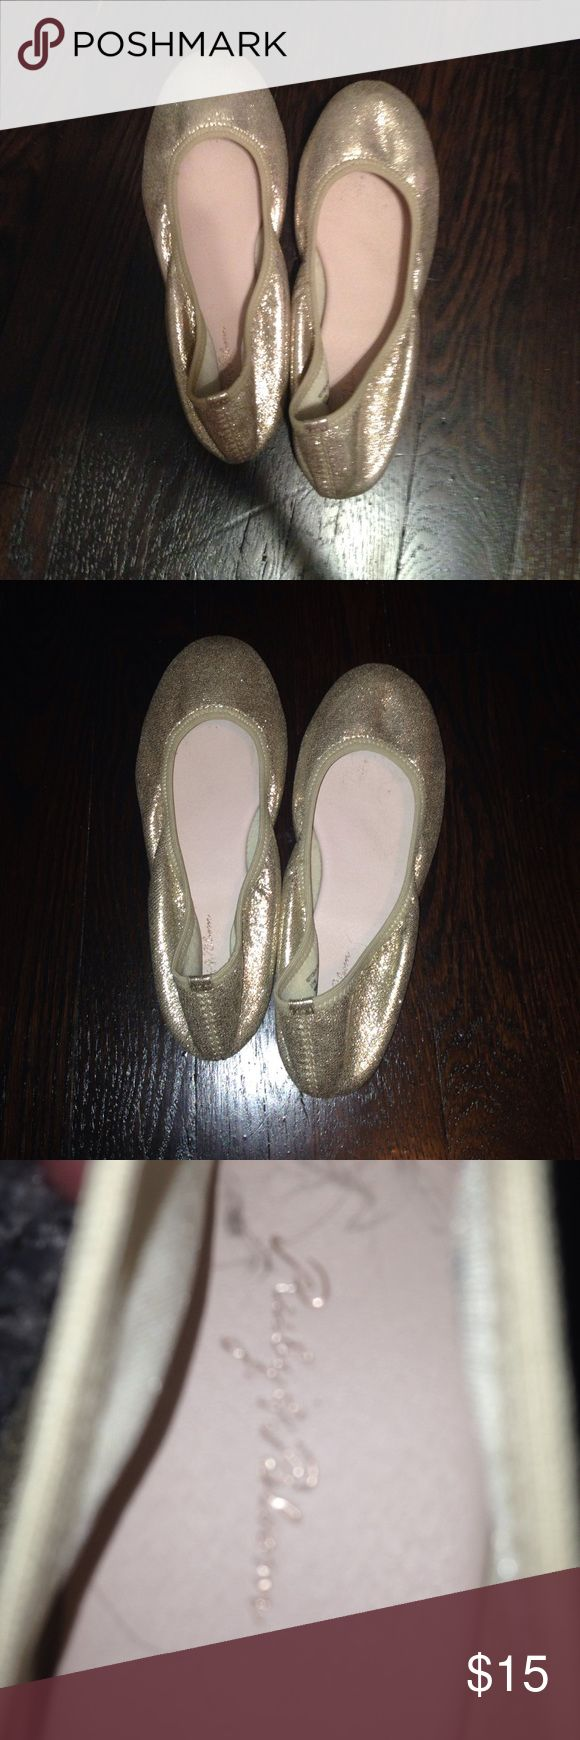 Gold kids shoes Sparkles dont come off. Very fine sparkles. Stretchy meterial. ONLY WORN ONCE GREAT CONDITION. Got them at Nordstrom. Please offer any price if you don't like list price ruby & bloom Shoes Dress Shoes